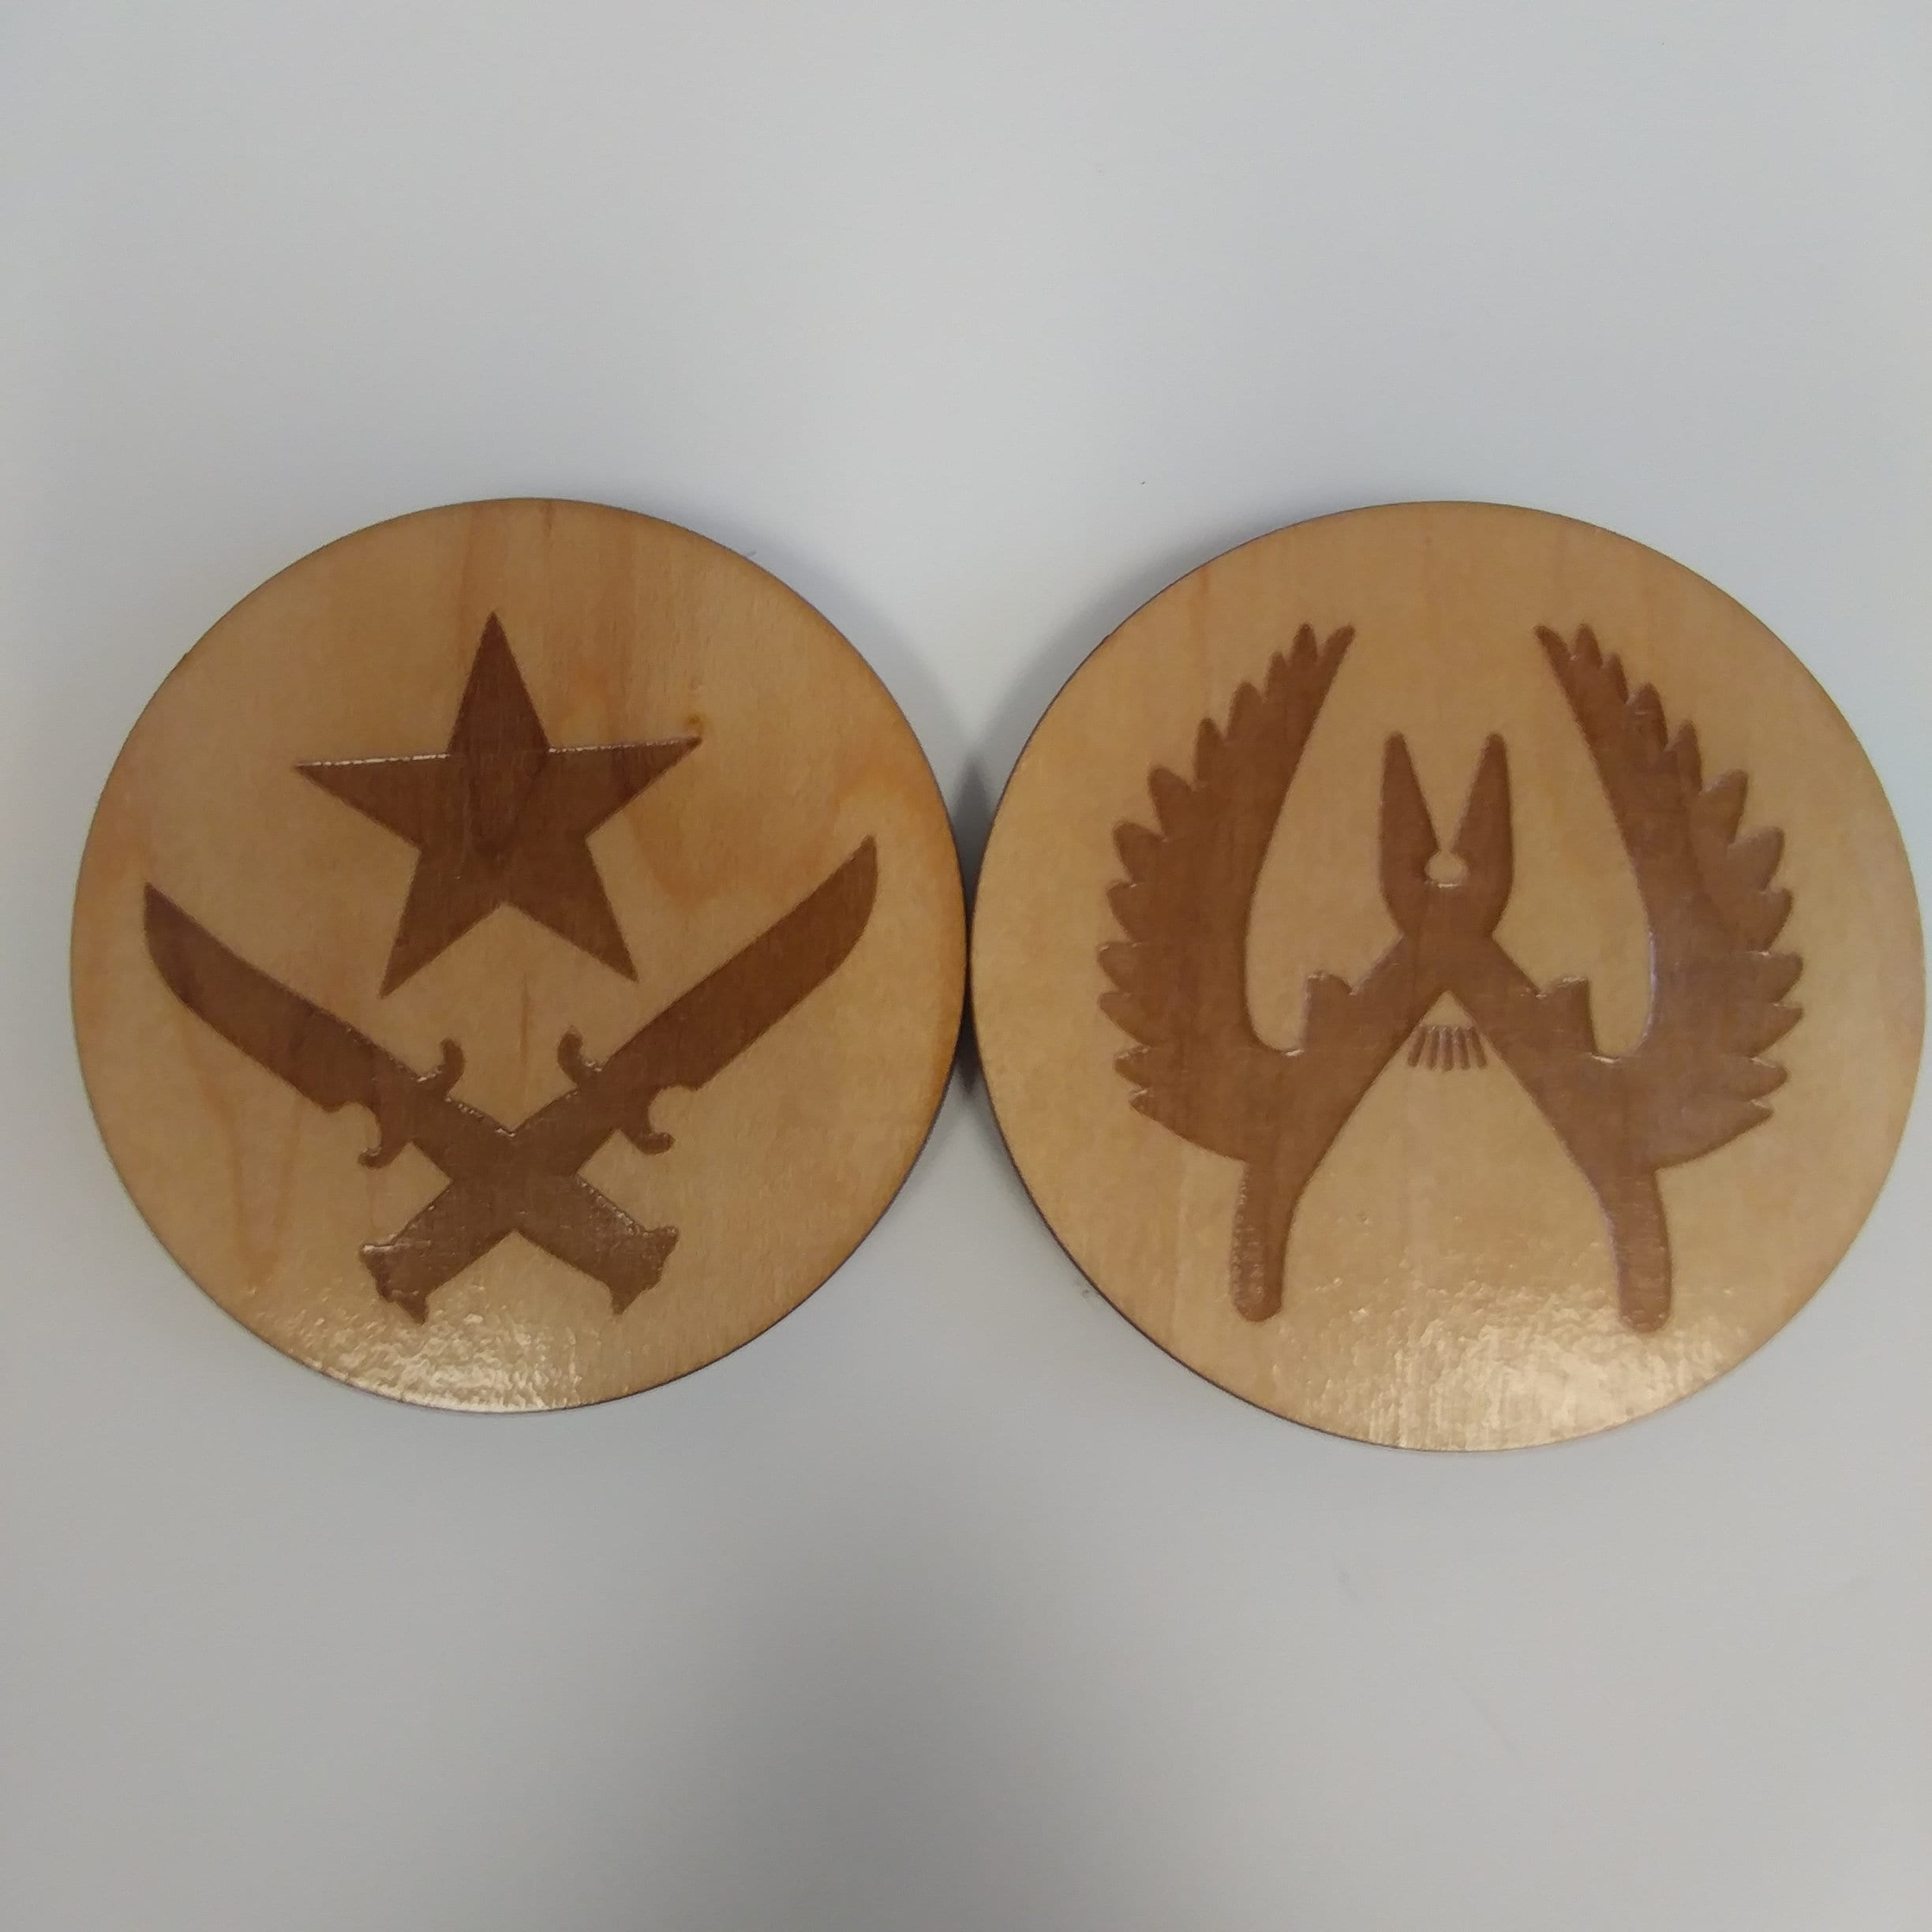 Wooden Coaster | Counter Strike CT Terrorist Laser Engrave Felt Bottom